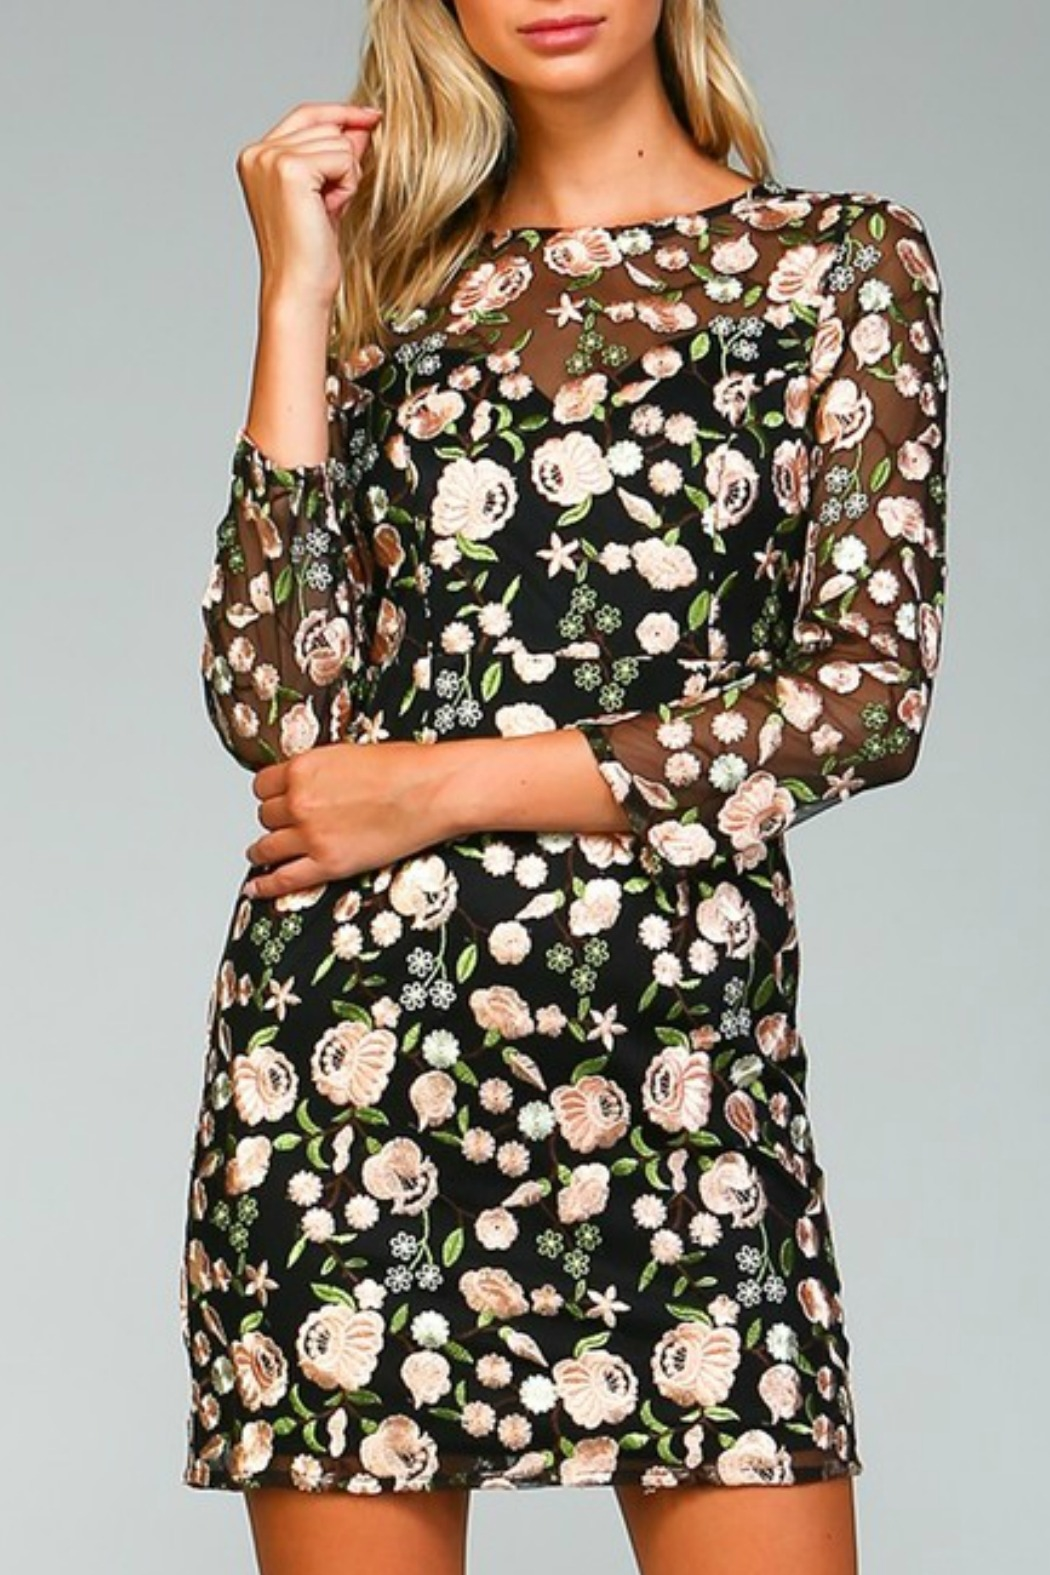 Minuet Floral Embroidered Dress - Main Image